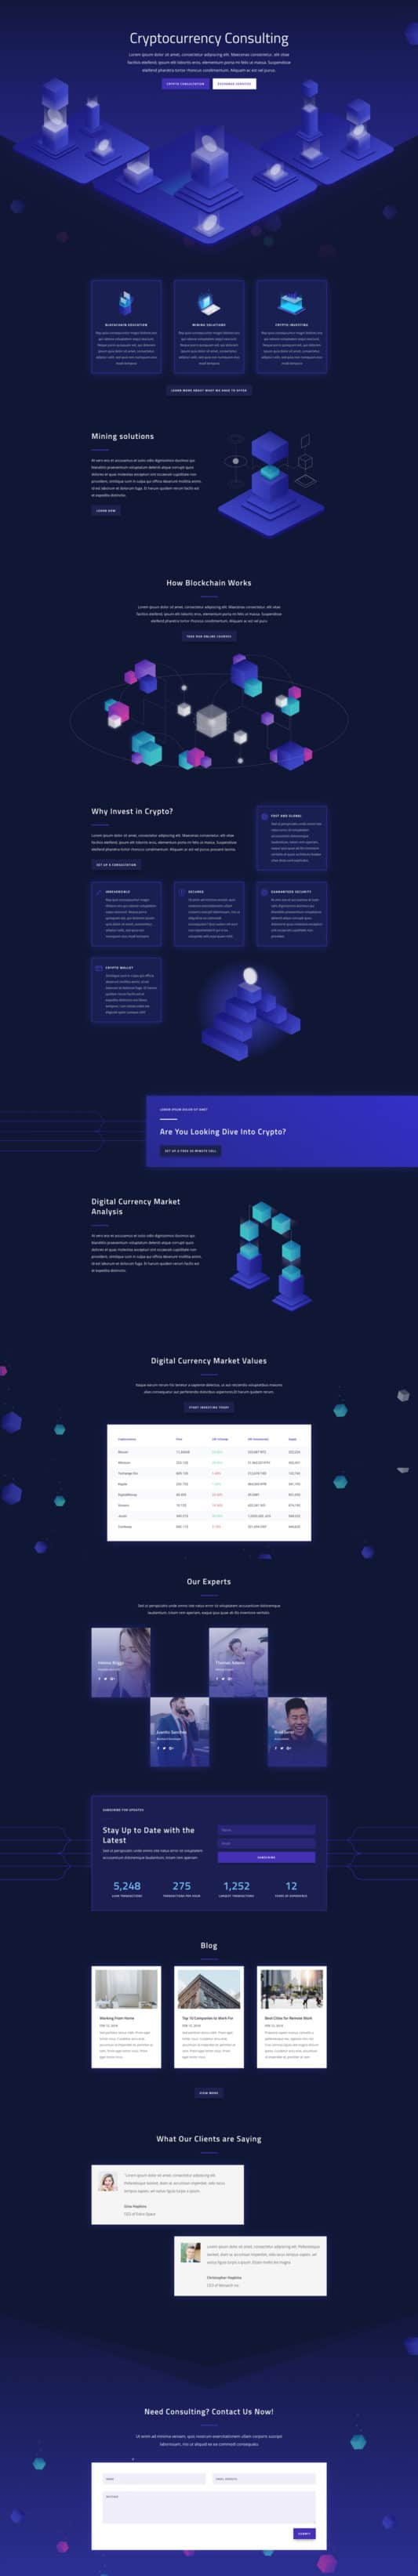 The Cryptocurrency Page Style: Homepage Design 1